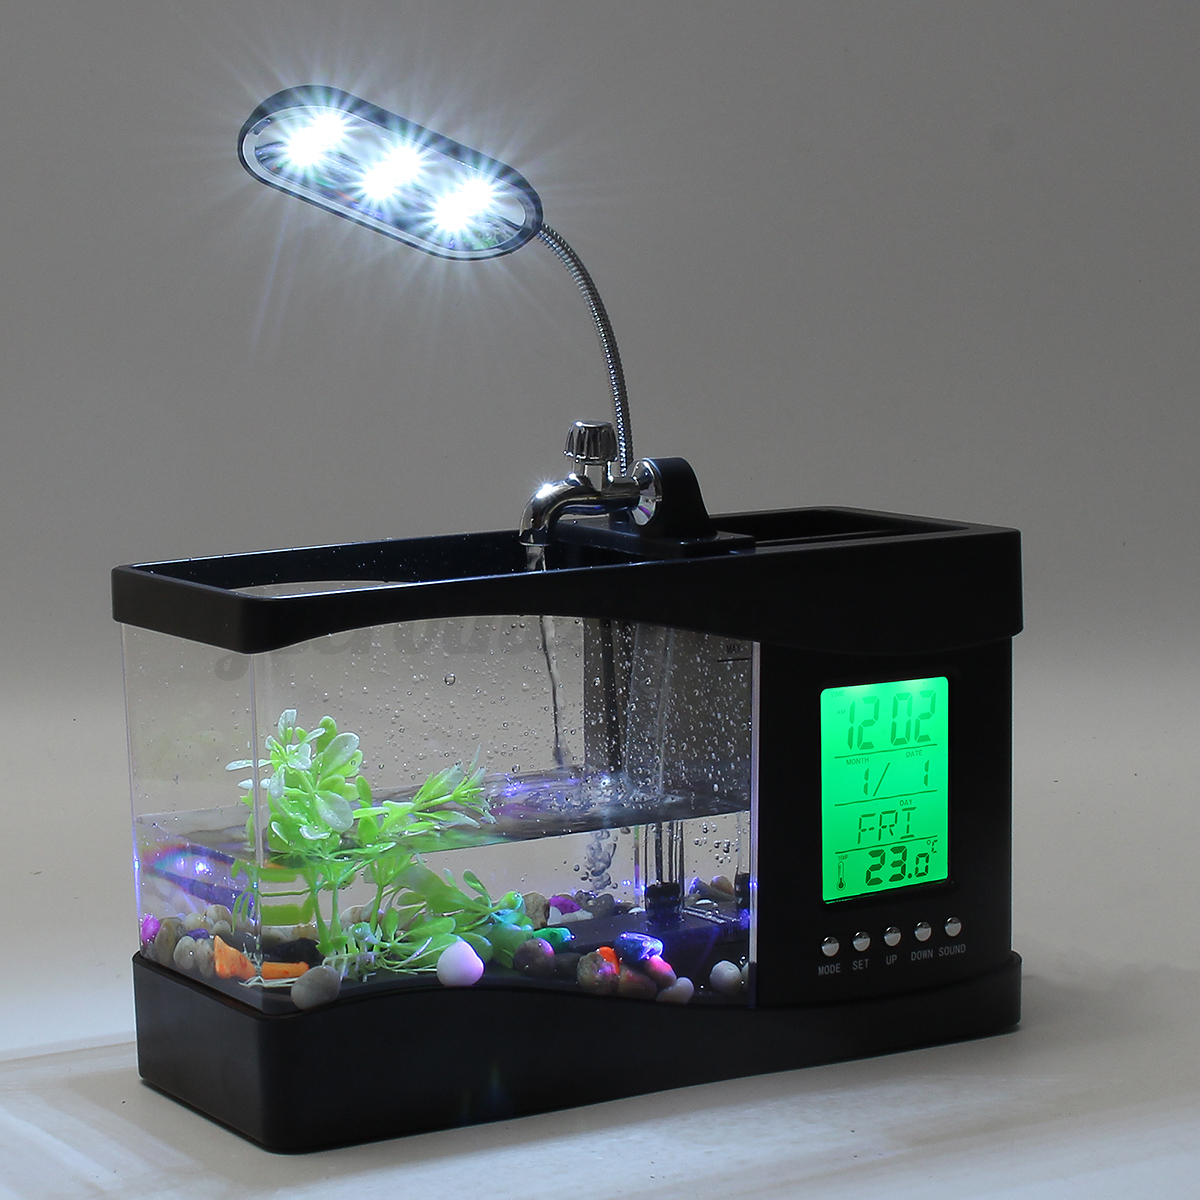 Mini usb desktop aquarium fish tank alarm clock table lamp for Desktop fish tank